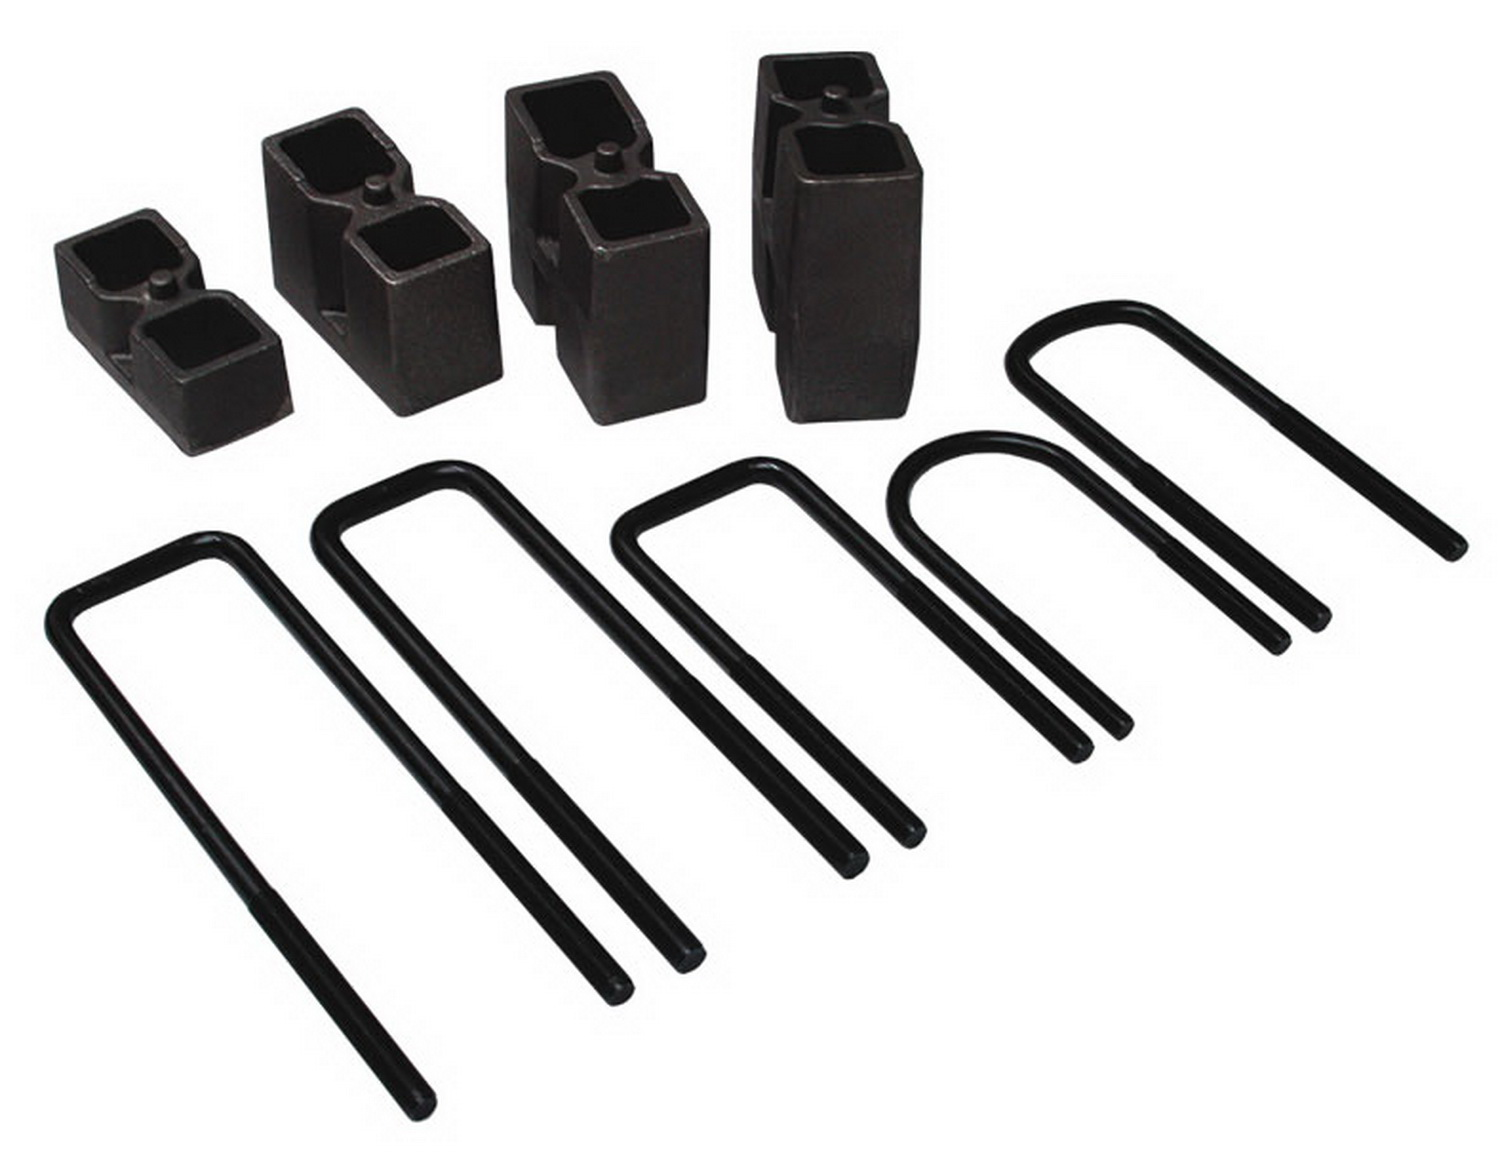 Skyjacker BUK2091 - Skyjacker Blocks & U-Bolt Kits